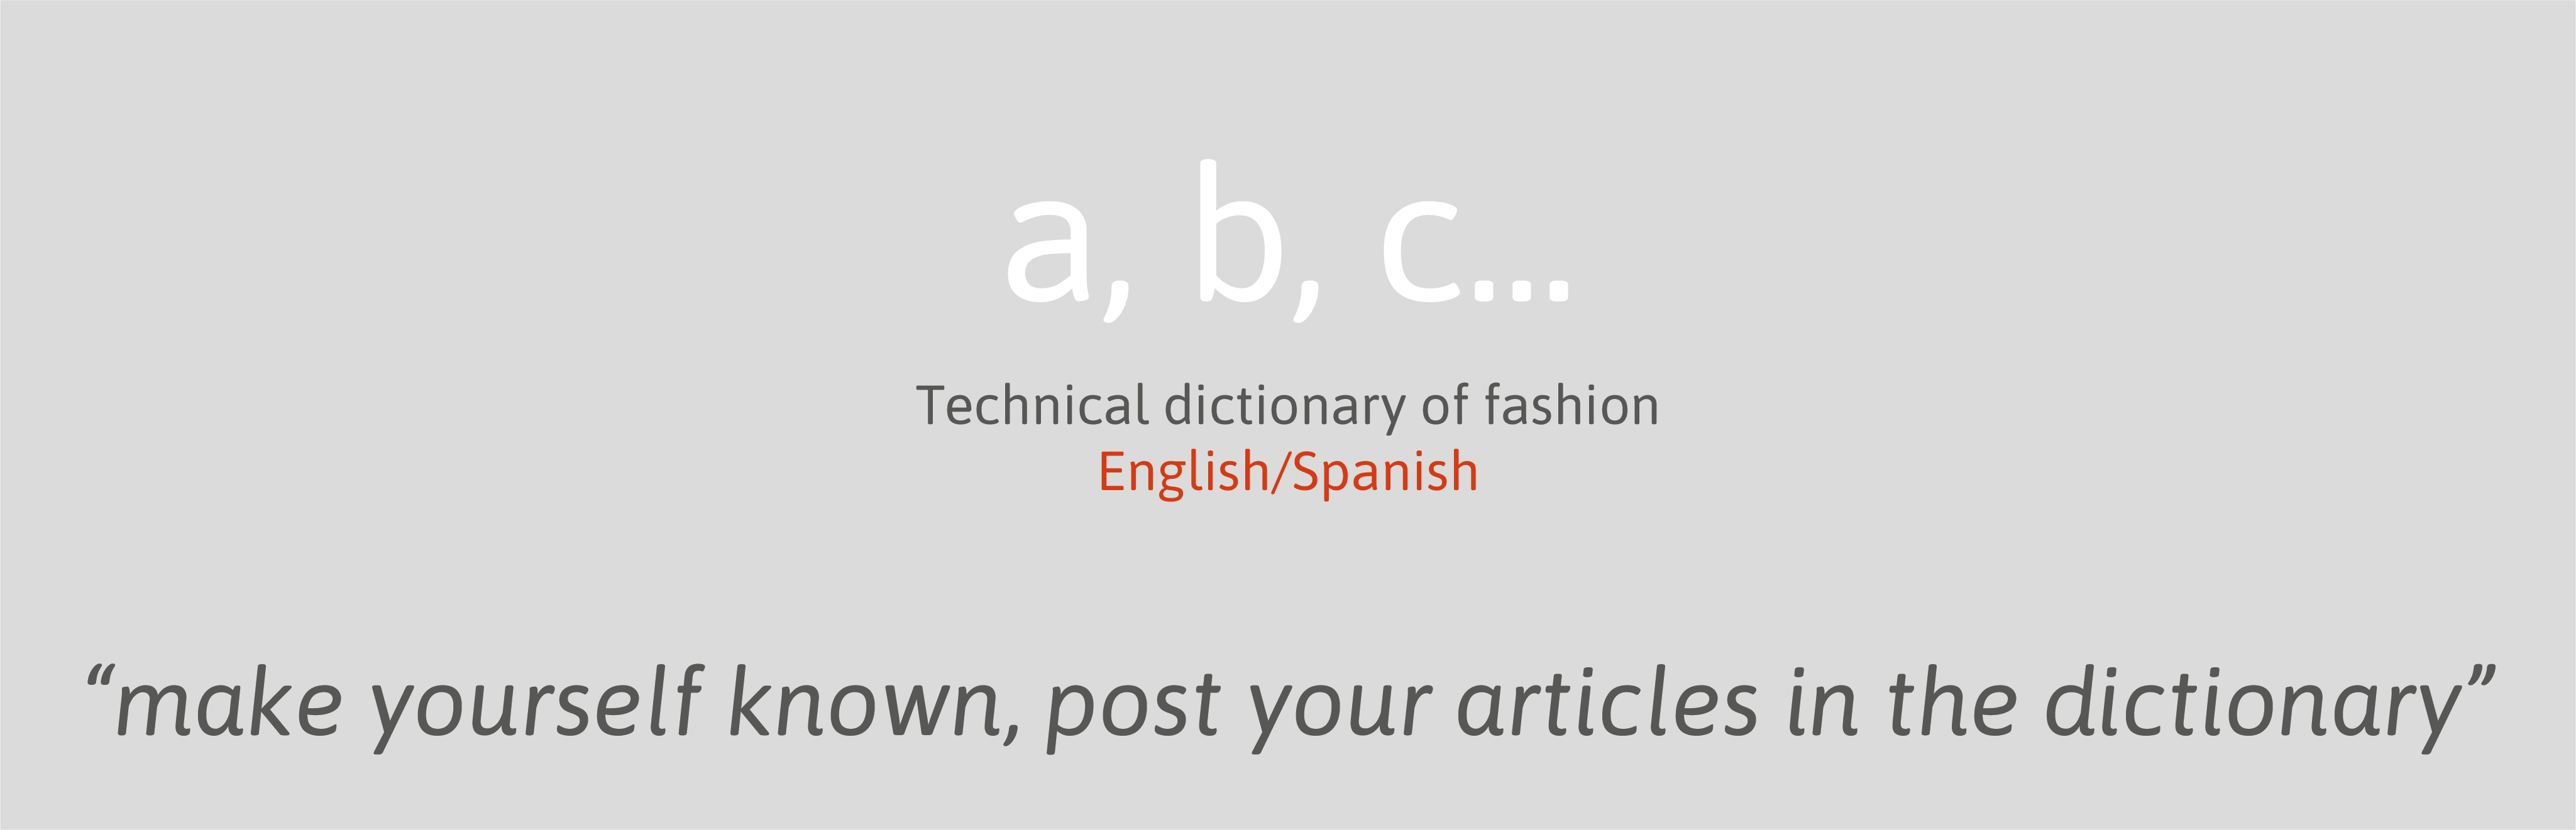 technical dictionary of fashion